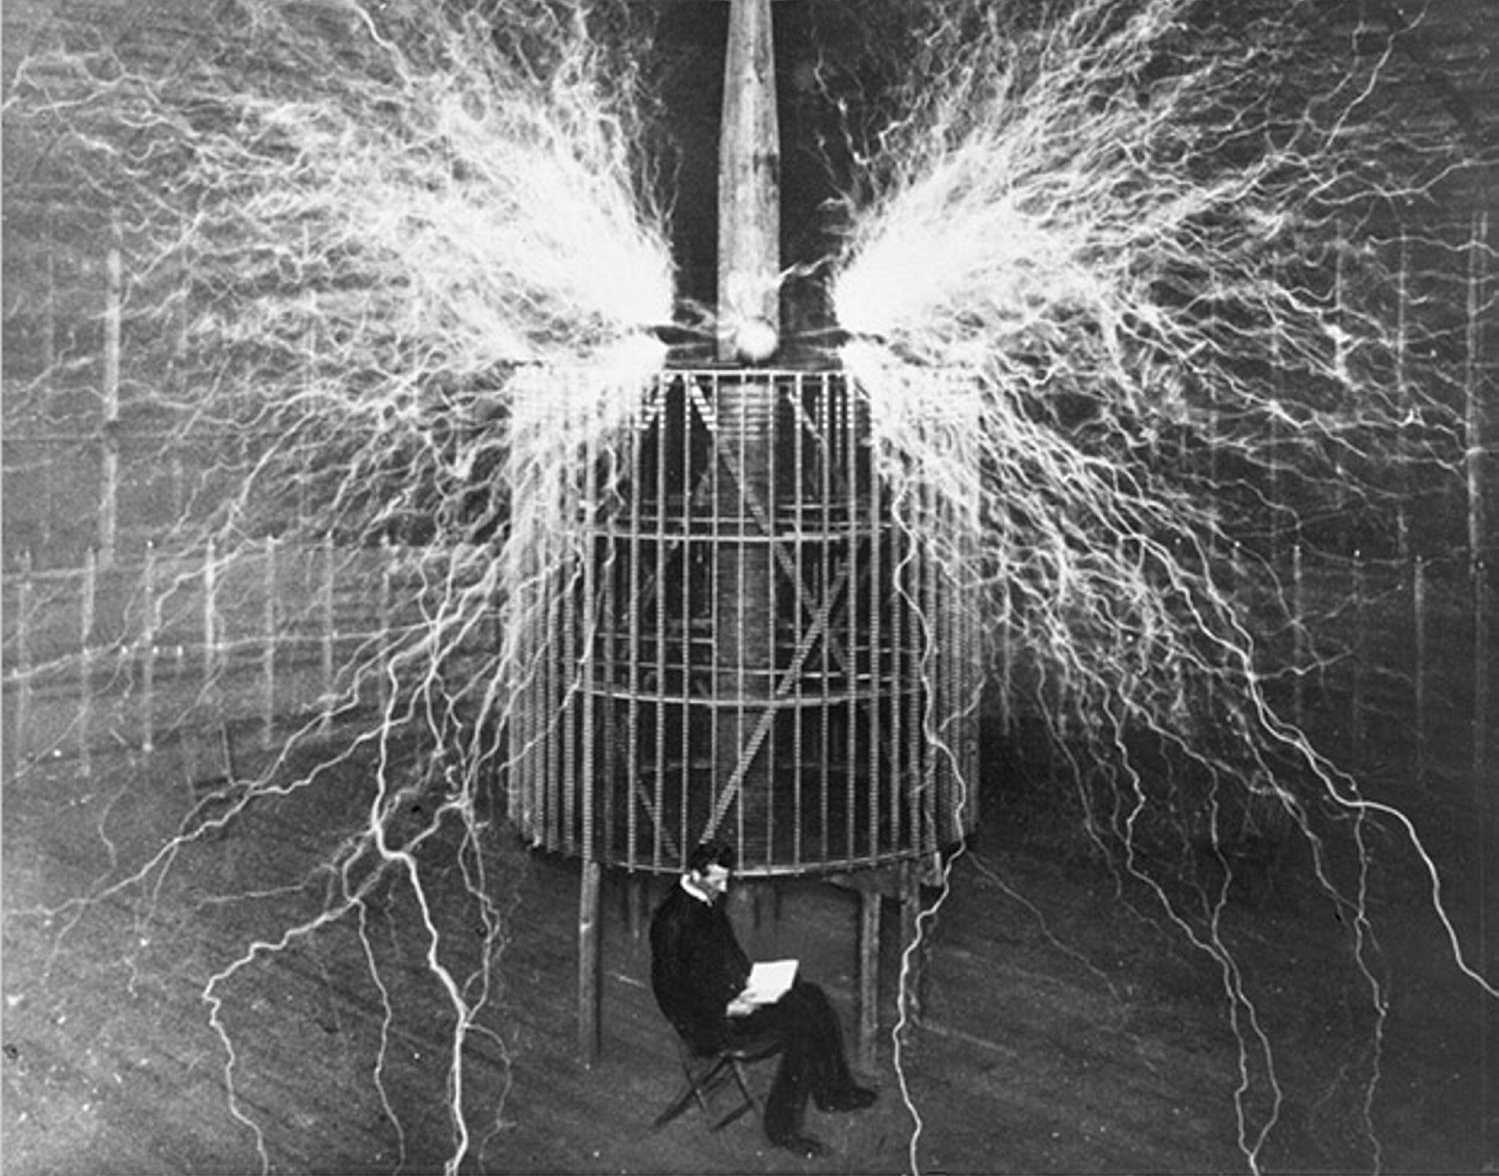 nikola-tesla-in-his-laboratory-1899